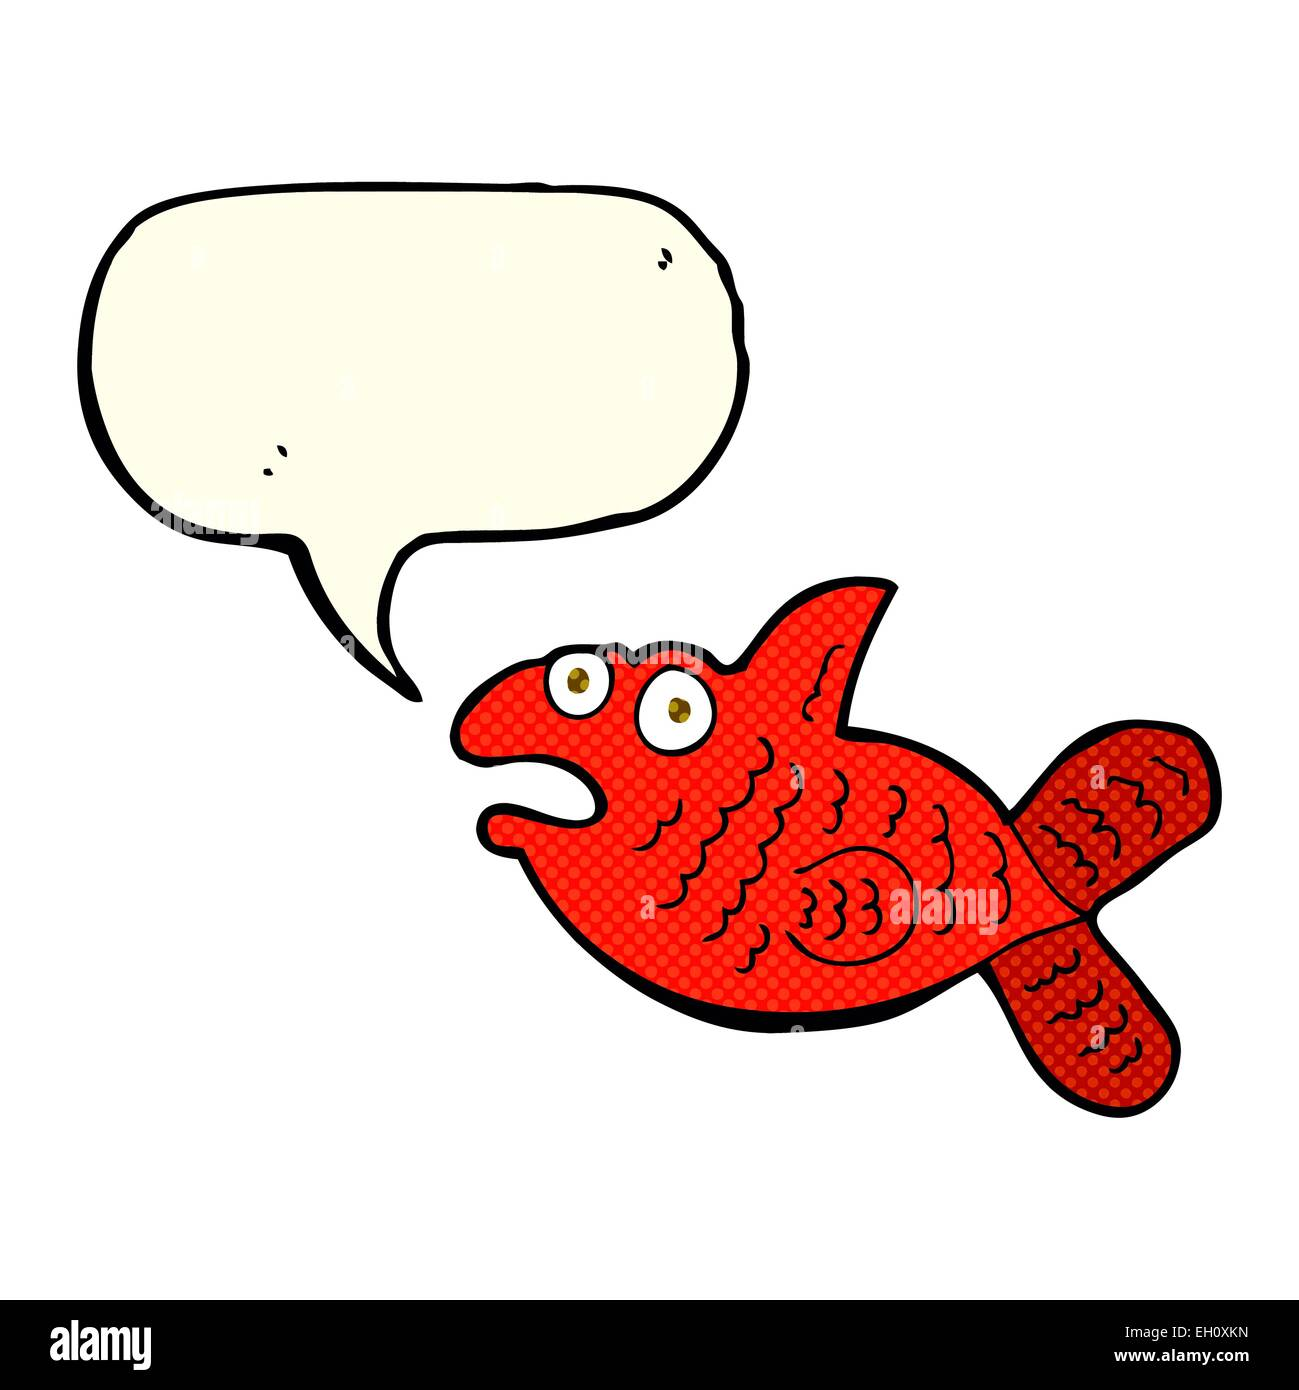 Talking Fish Cut Out Stock Images & Pictures - Alamy